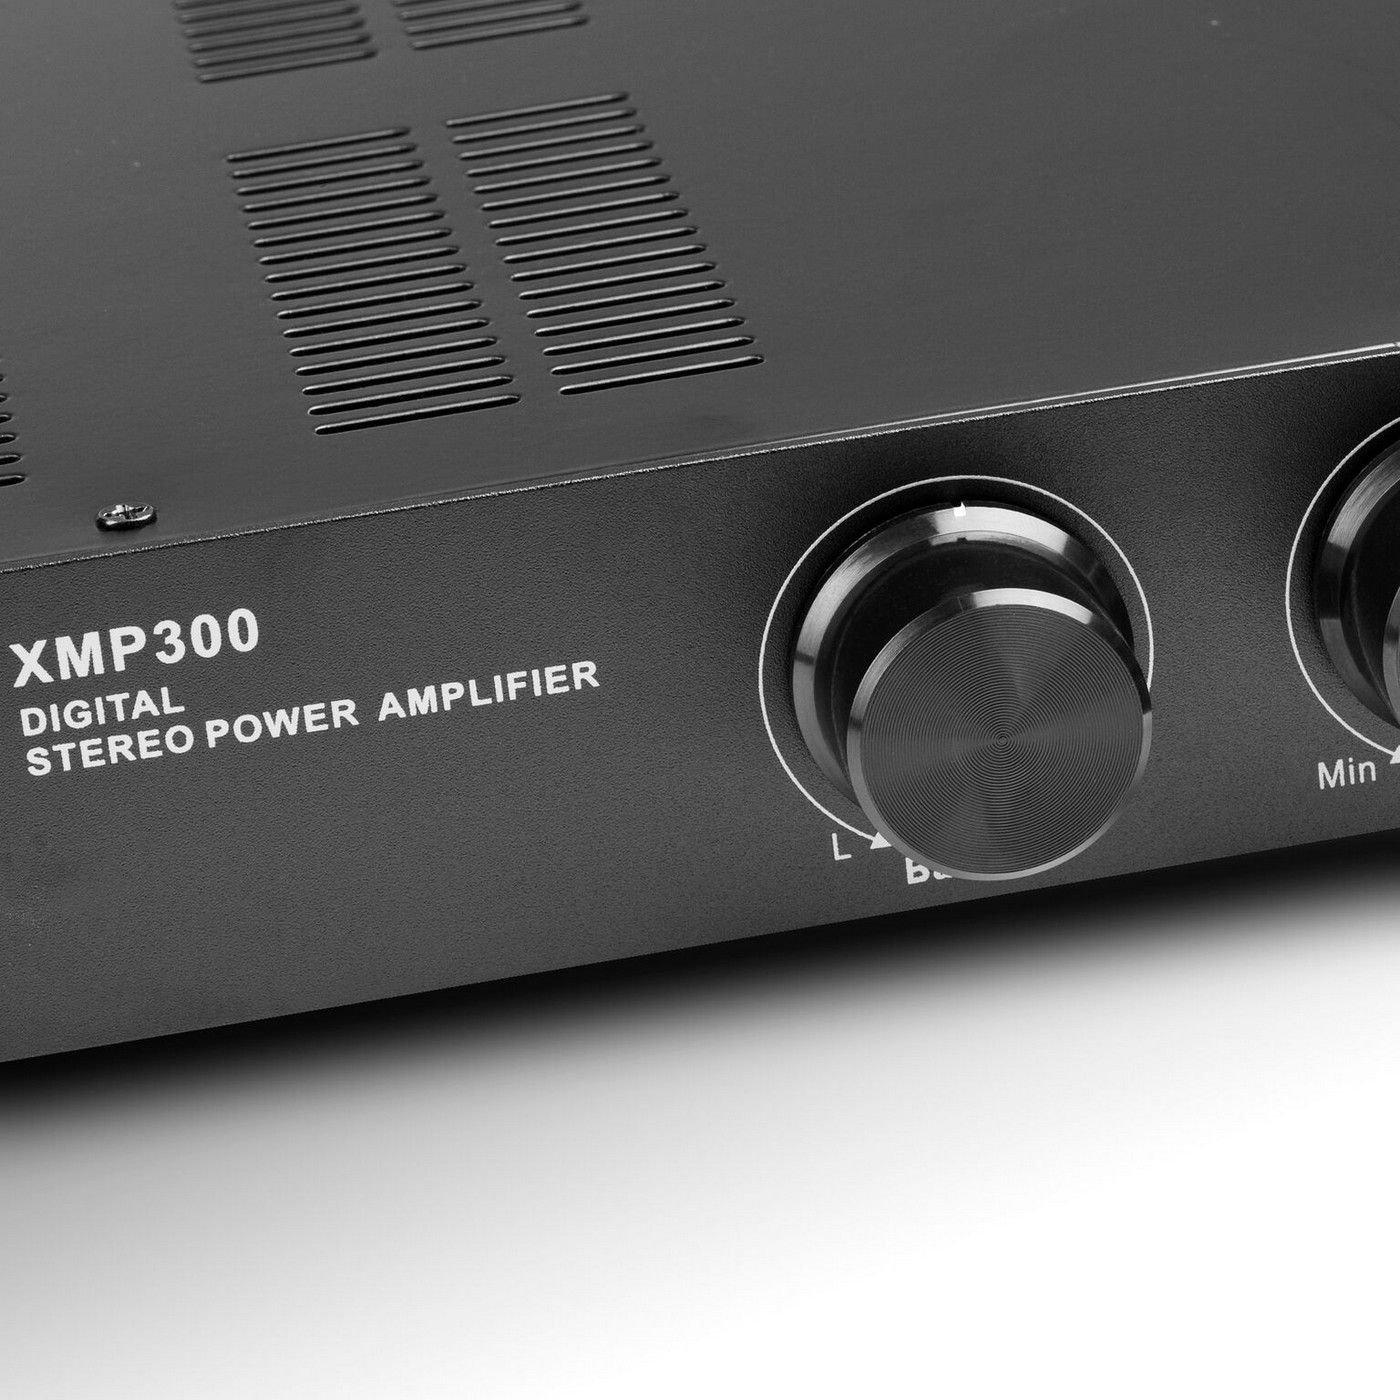 xmp300 2 channel 150w each channel class d stereo power amplifier priority input and a b. Black Bedroom Furniture Sets. Home Design Ideas